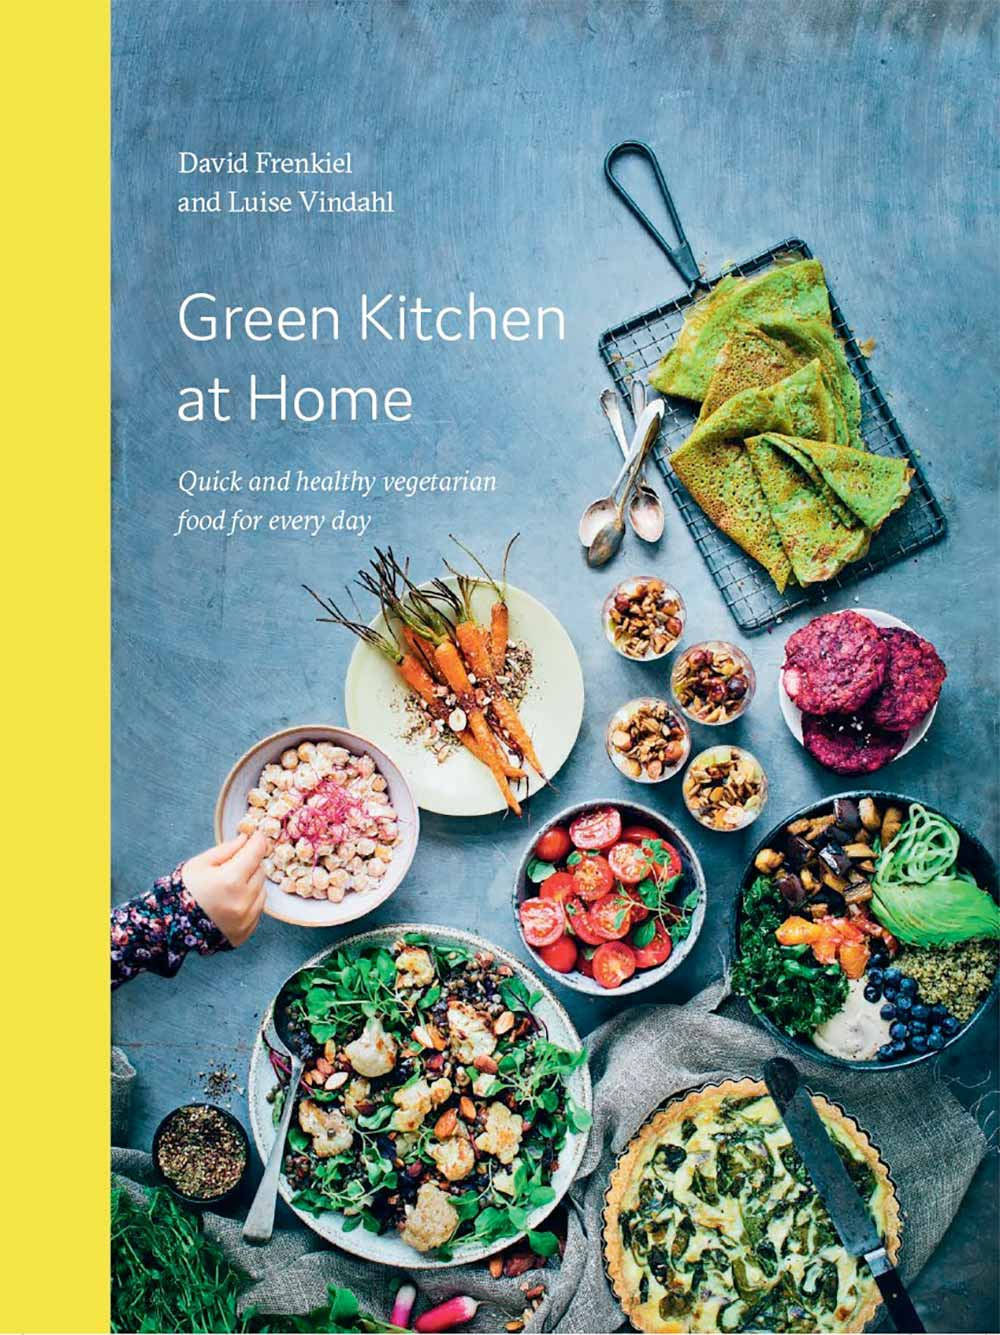 Green Kitchen at Home: Quick and Healthy Vegetarian Food for Everyday, shop Amelia Freer